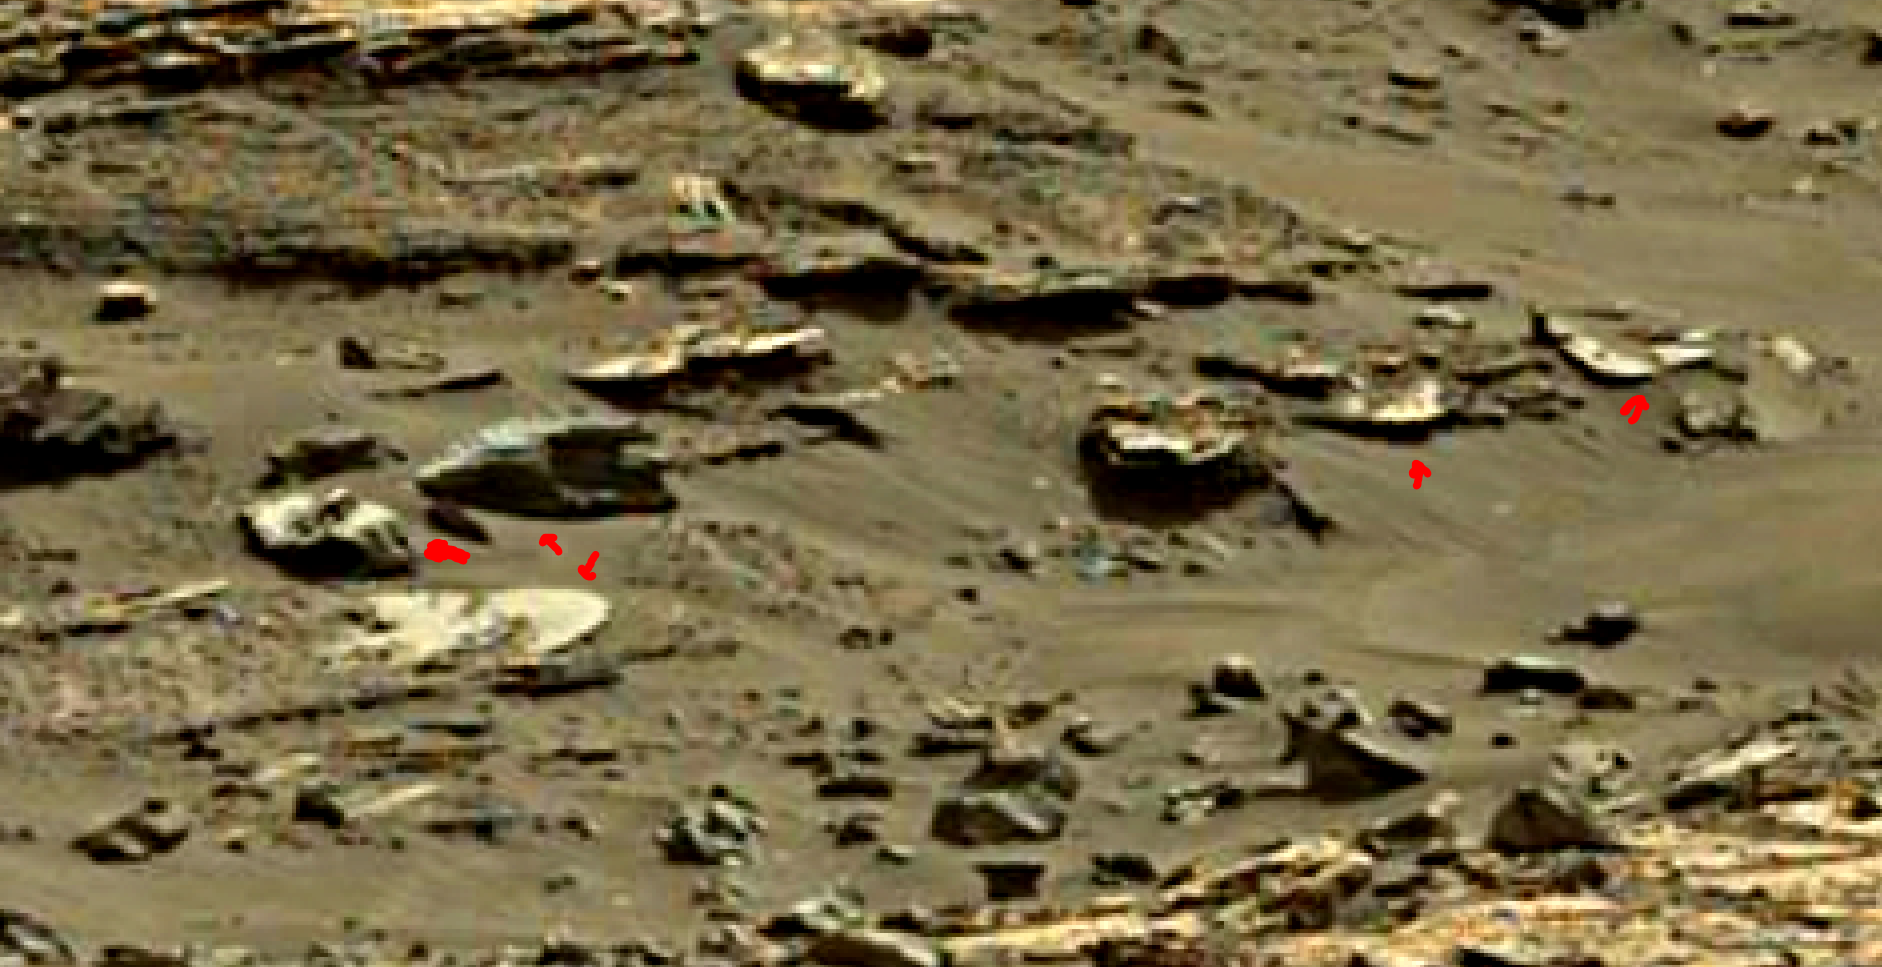 mars-sol-1451-anomaly-artifacts-13-was-life-on-mars